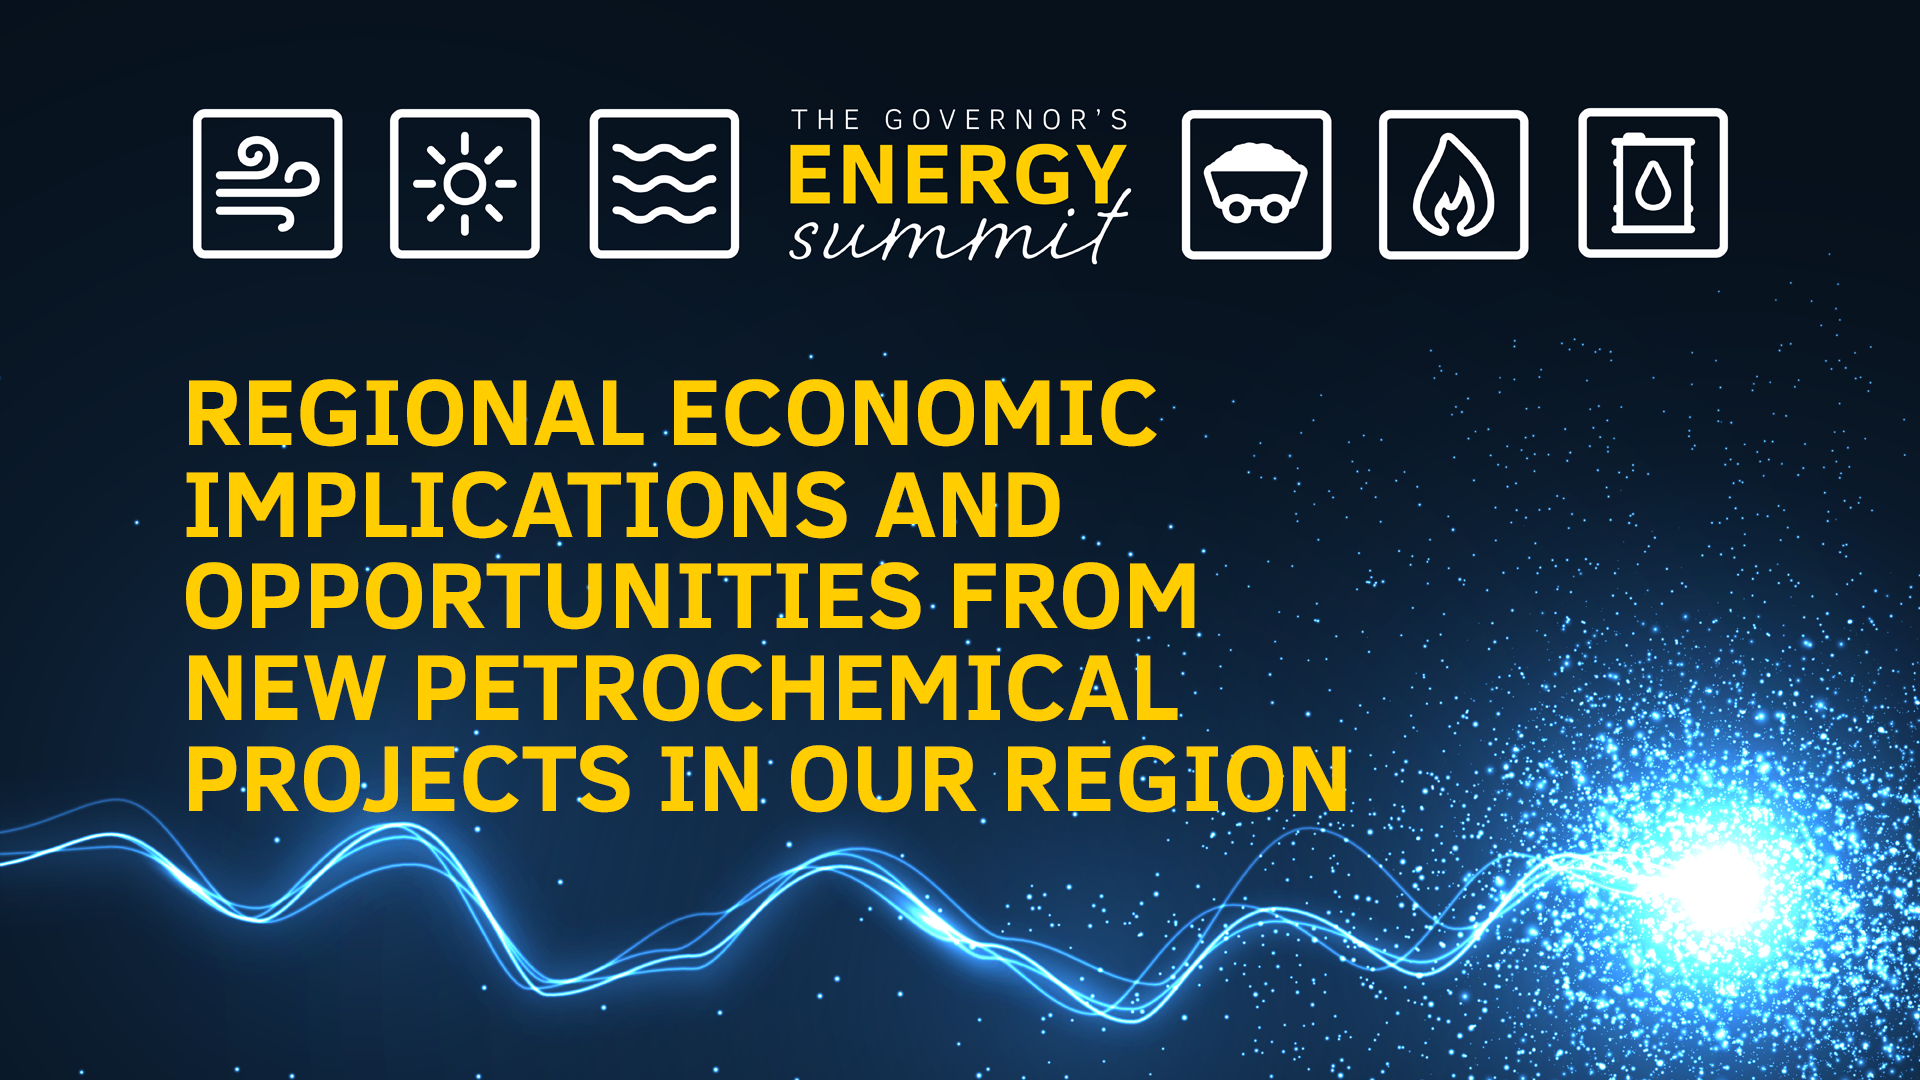 Regional Economic Implications and Opportunities From New Petrochemical   Projects in Our Region